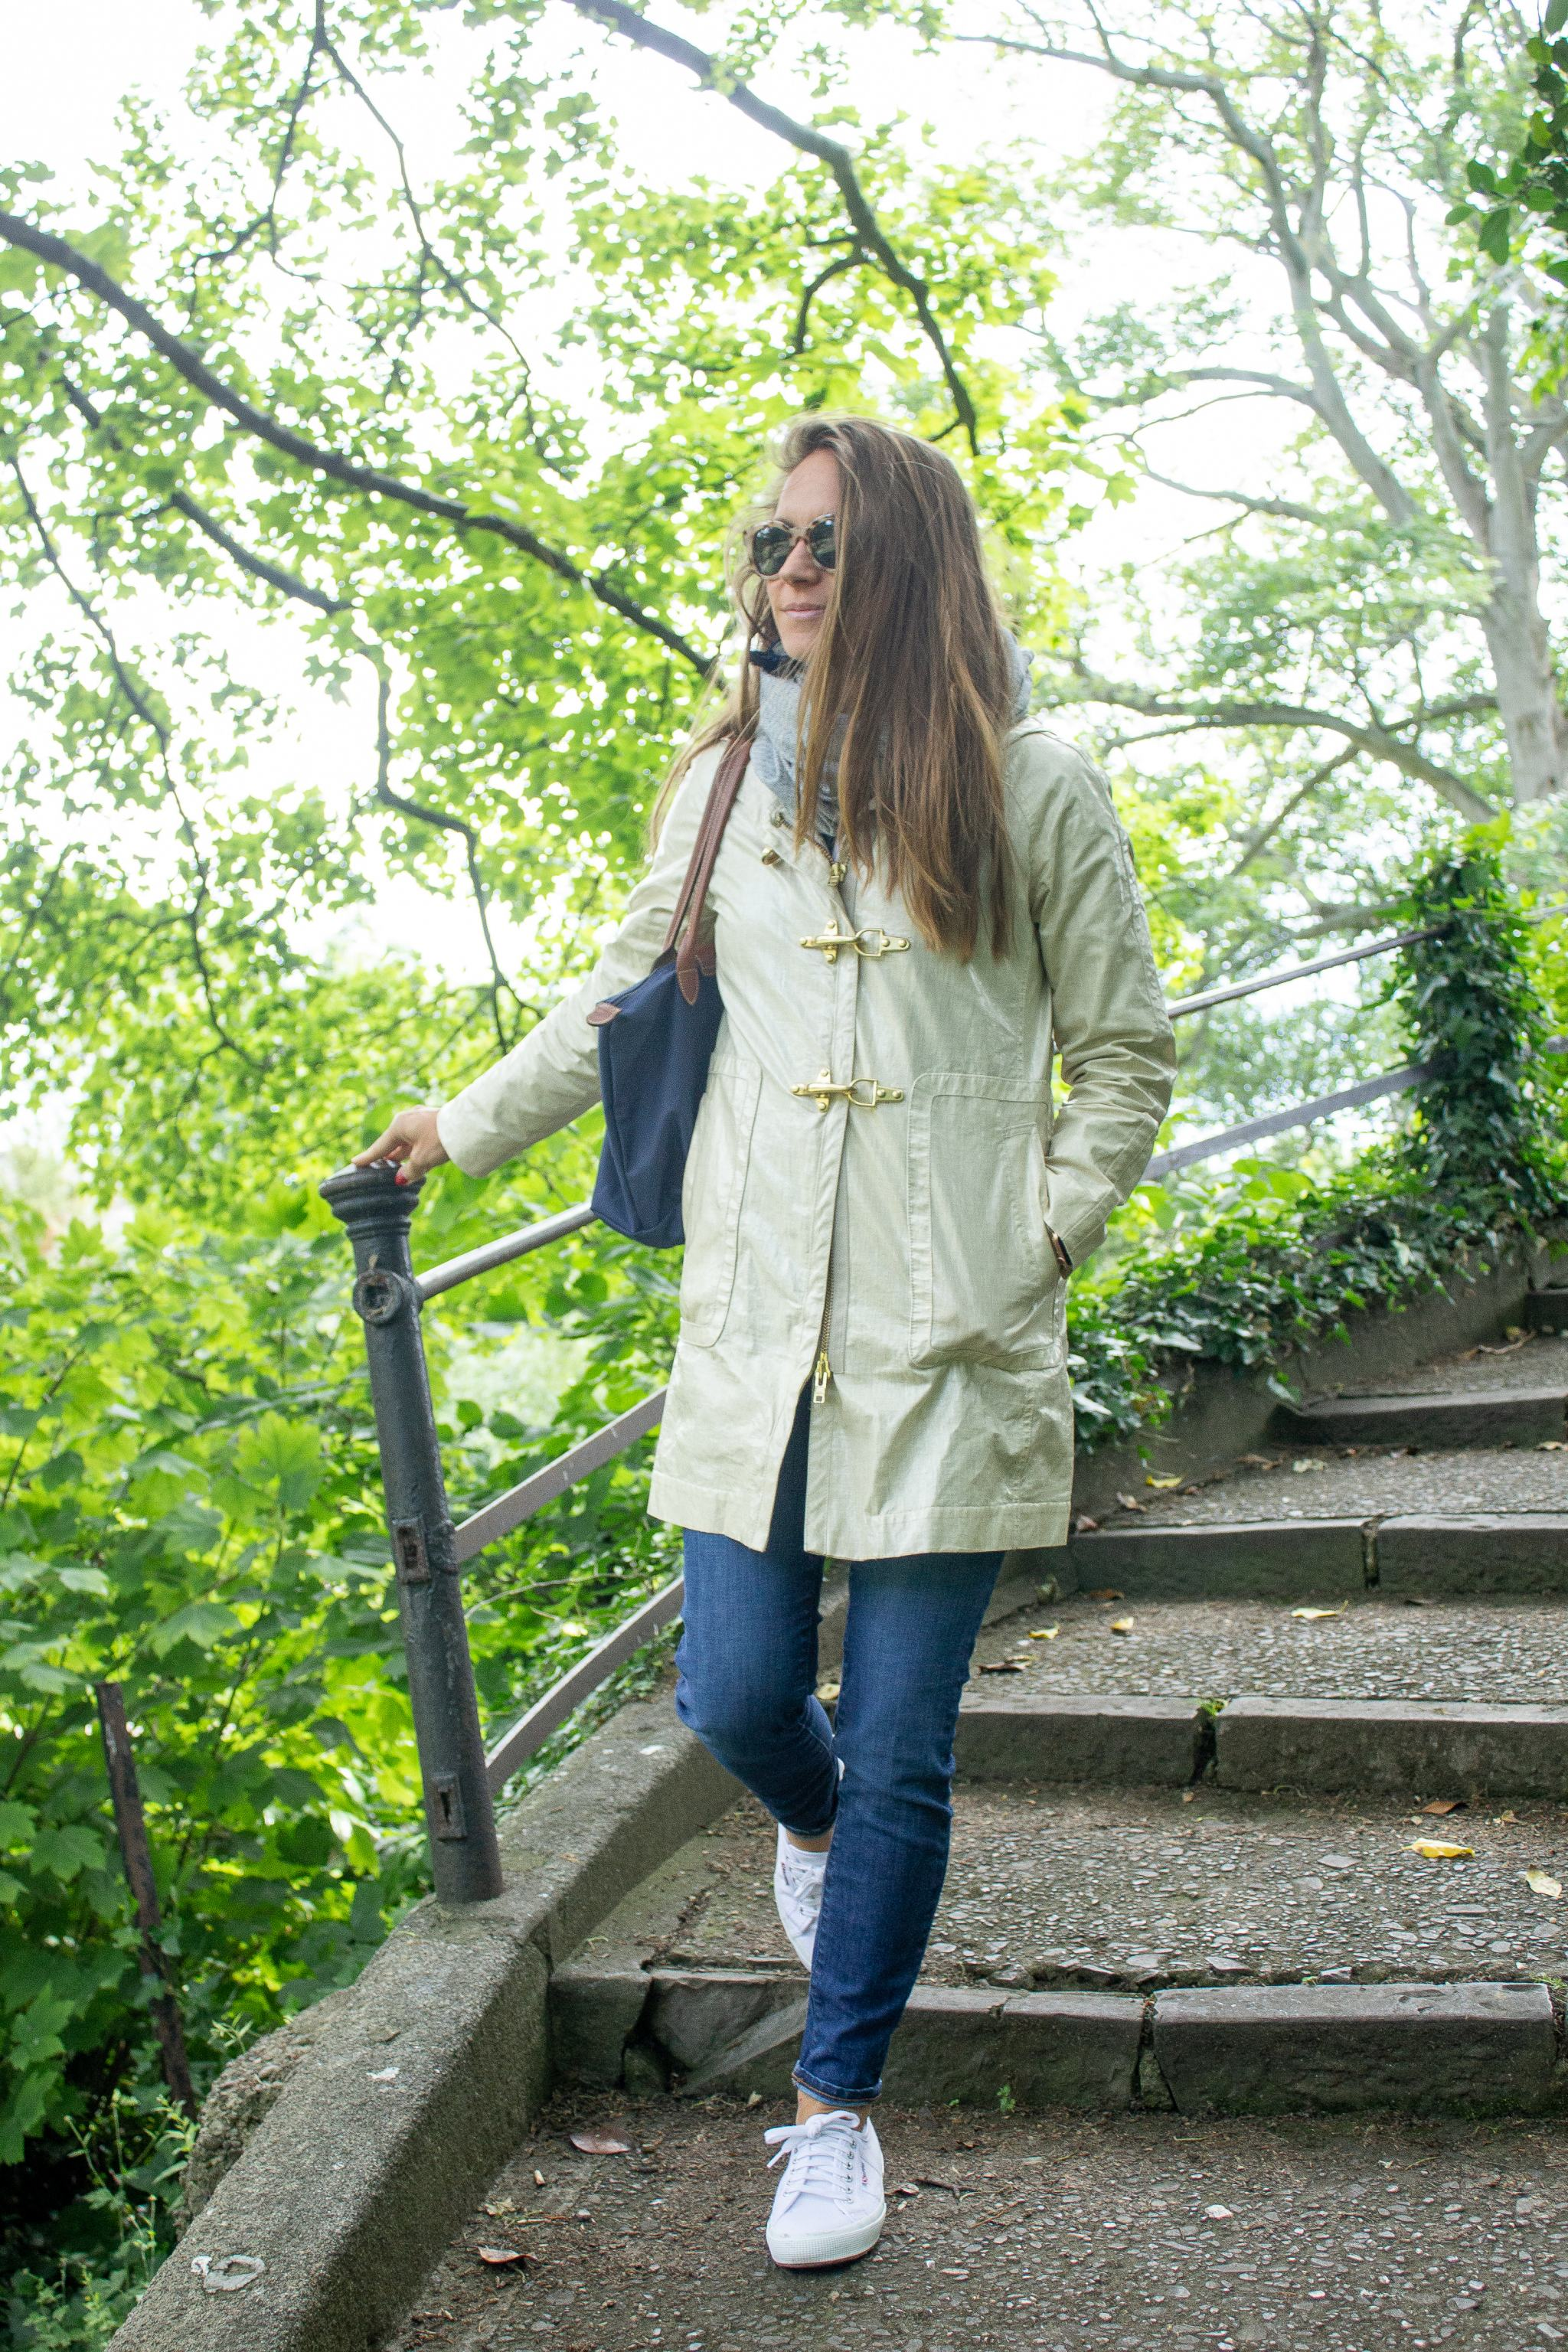 classic style - maternity style - second trimester outfit idea - pregnancy style - white superga sneakers - jeans and sneakers - superga cotu sneakers - travel outfit inspiration - traveling in ireland - cute rain jacket